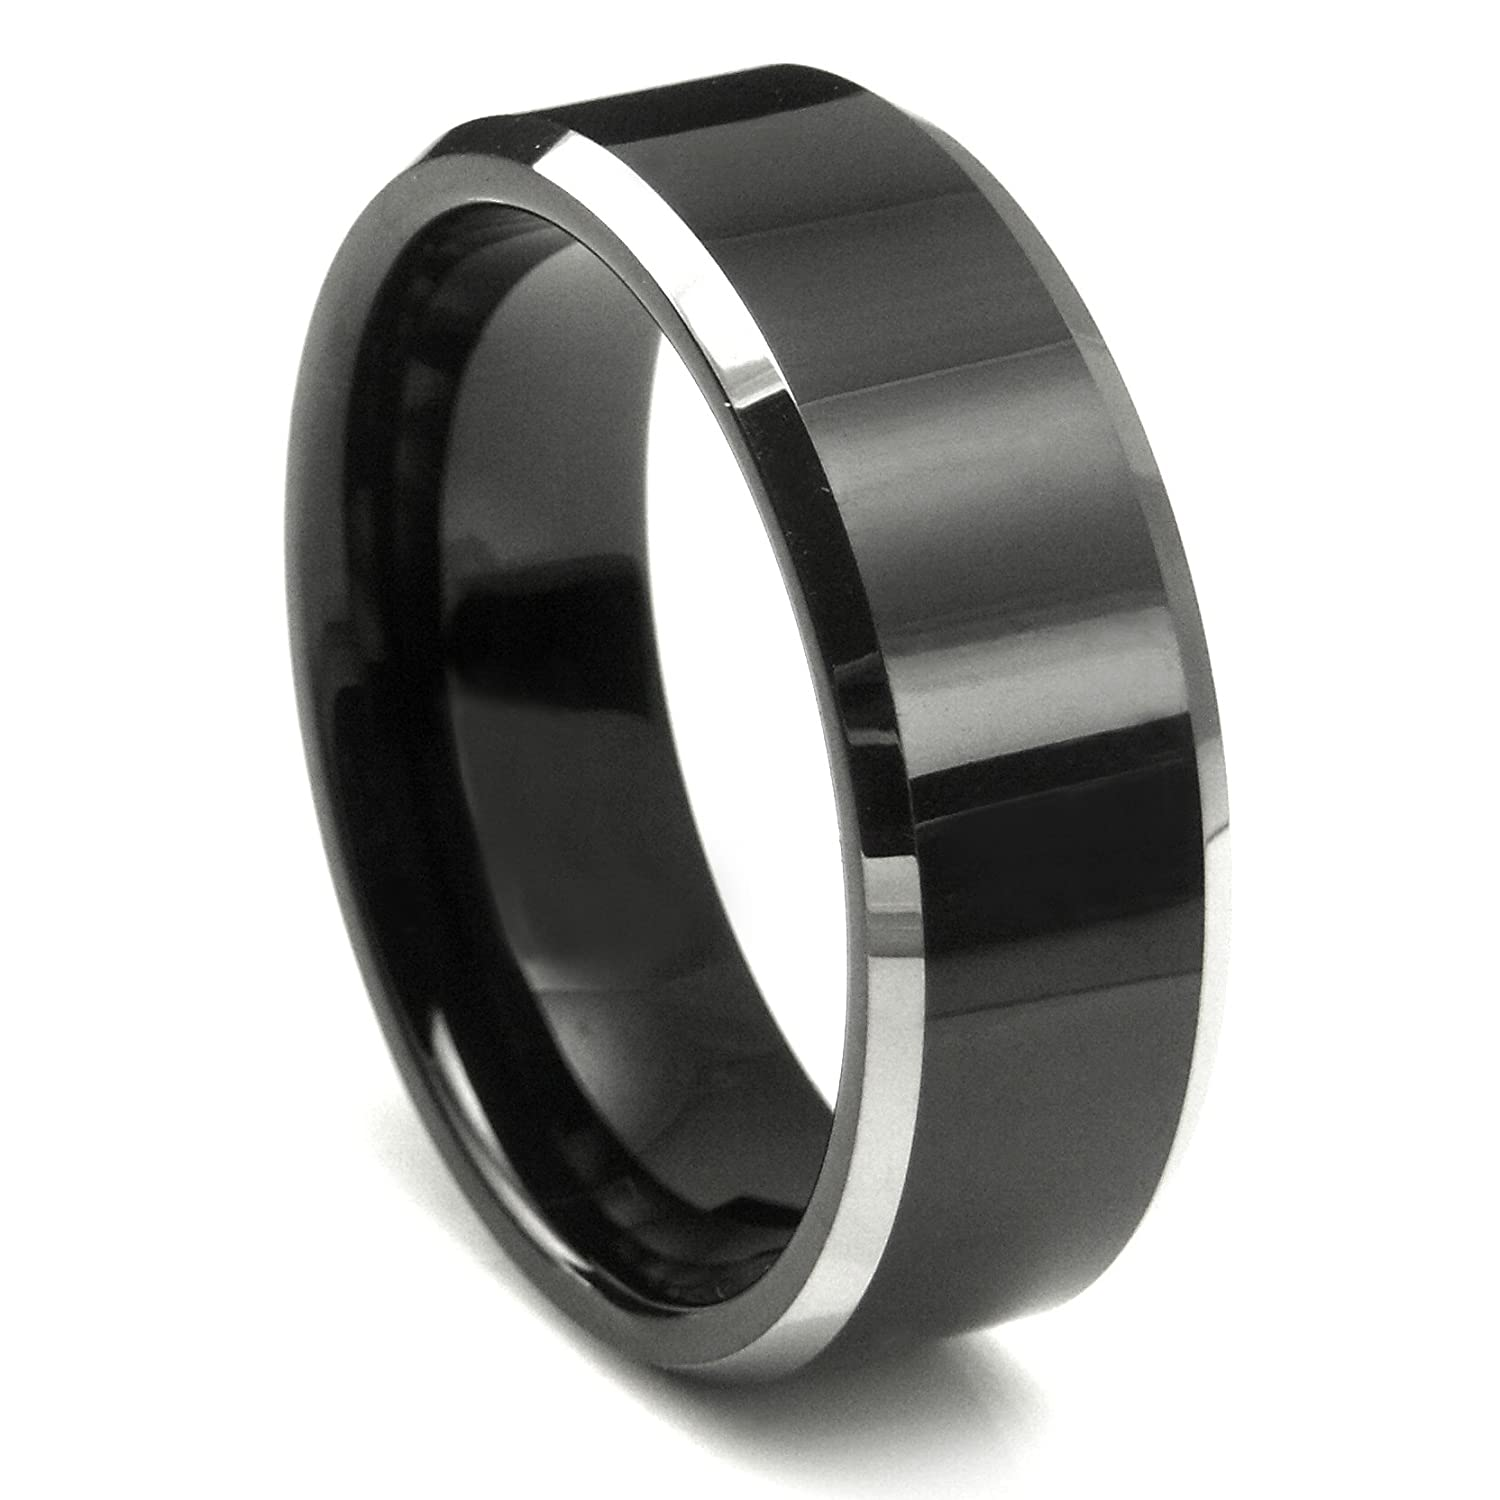 carbide rings band comfort with bands groove edges beveled wedding ring center fit black tungsten mens classic brushed and